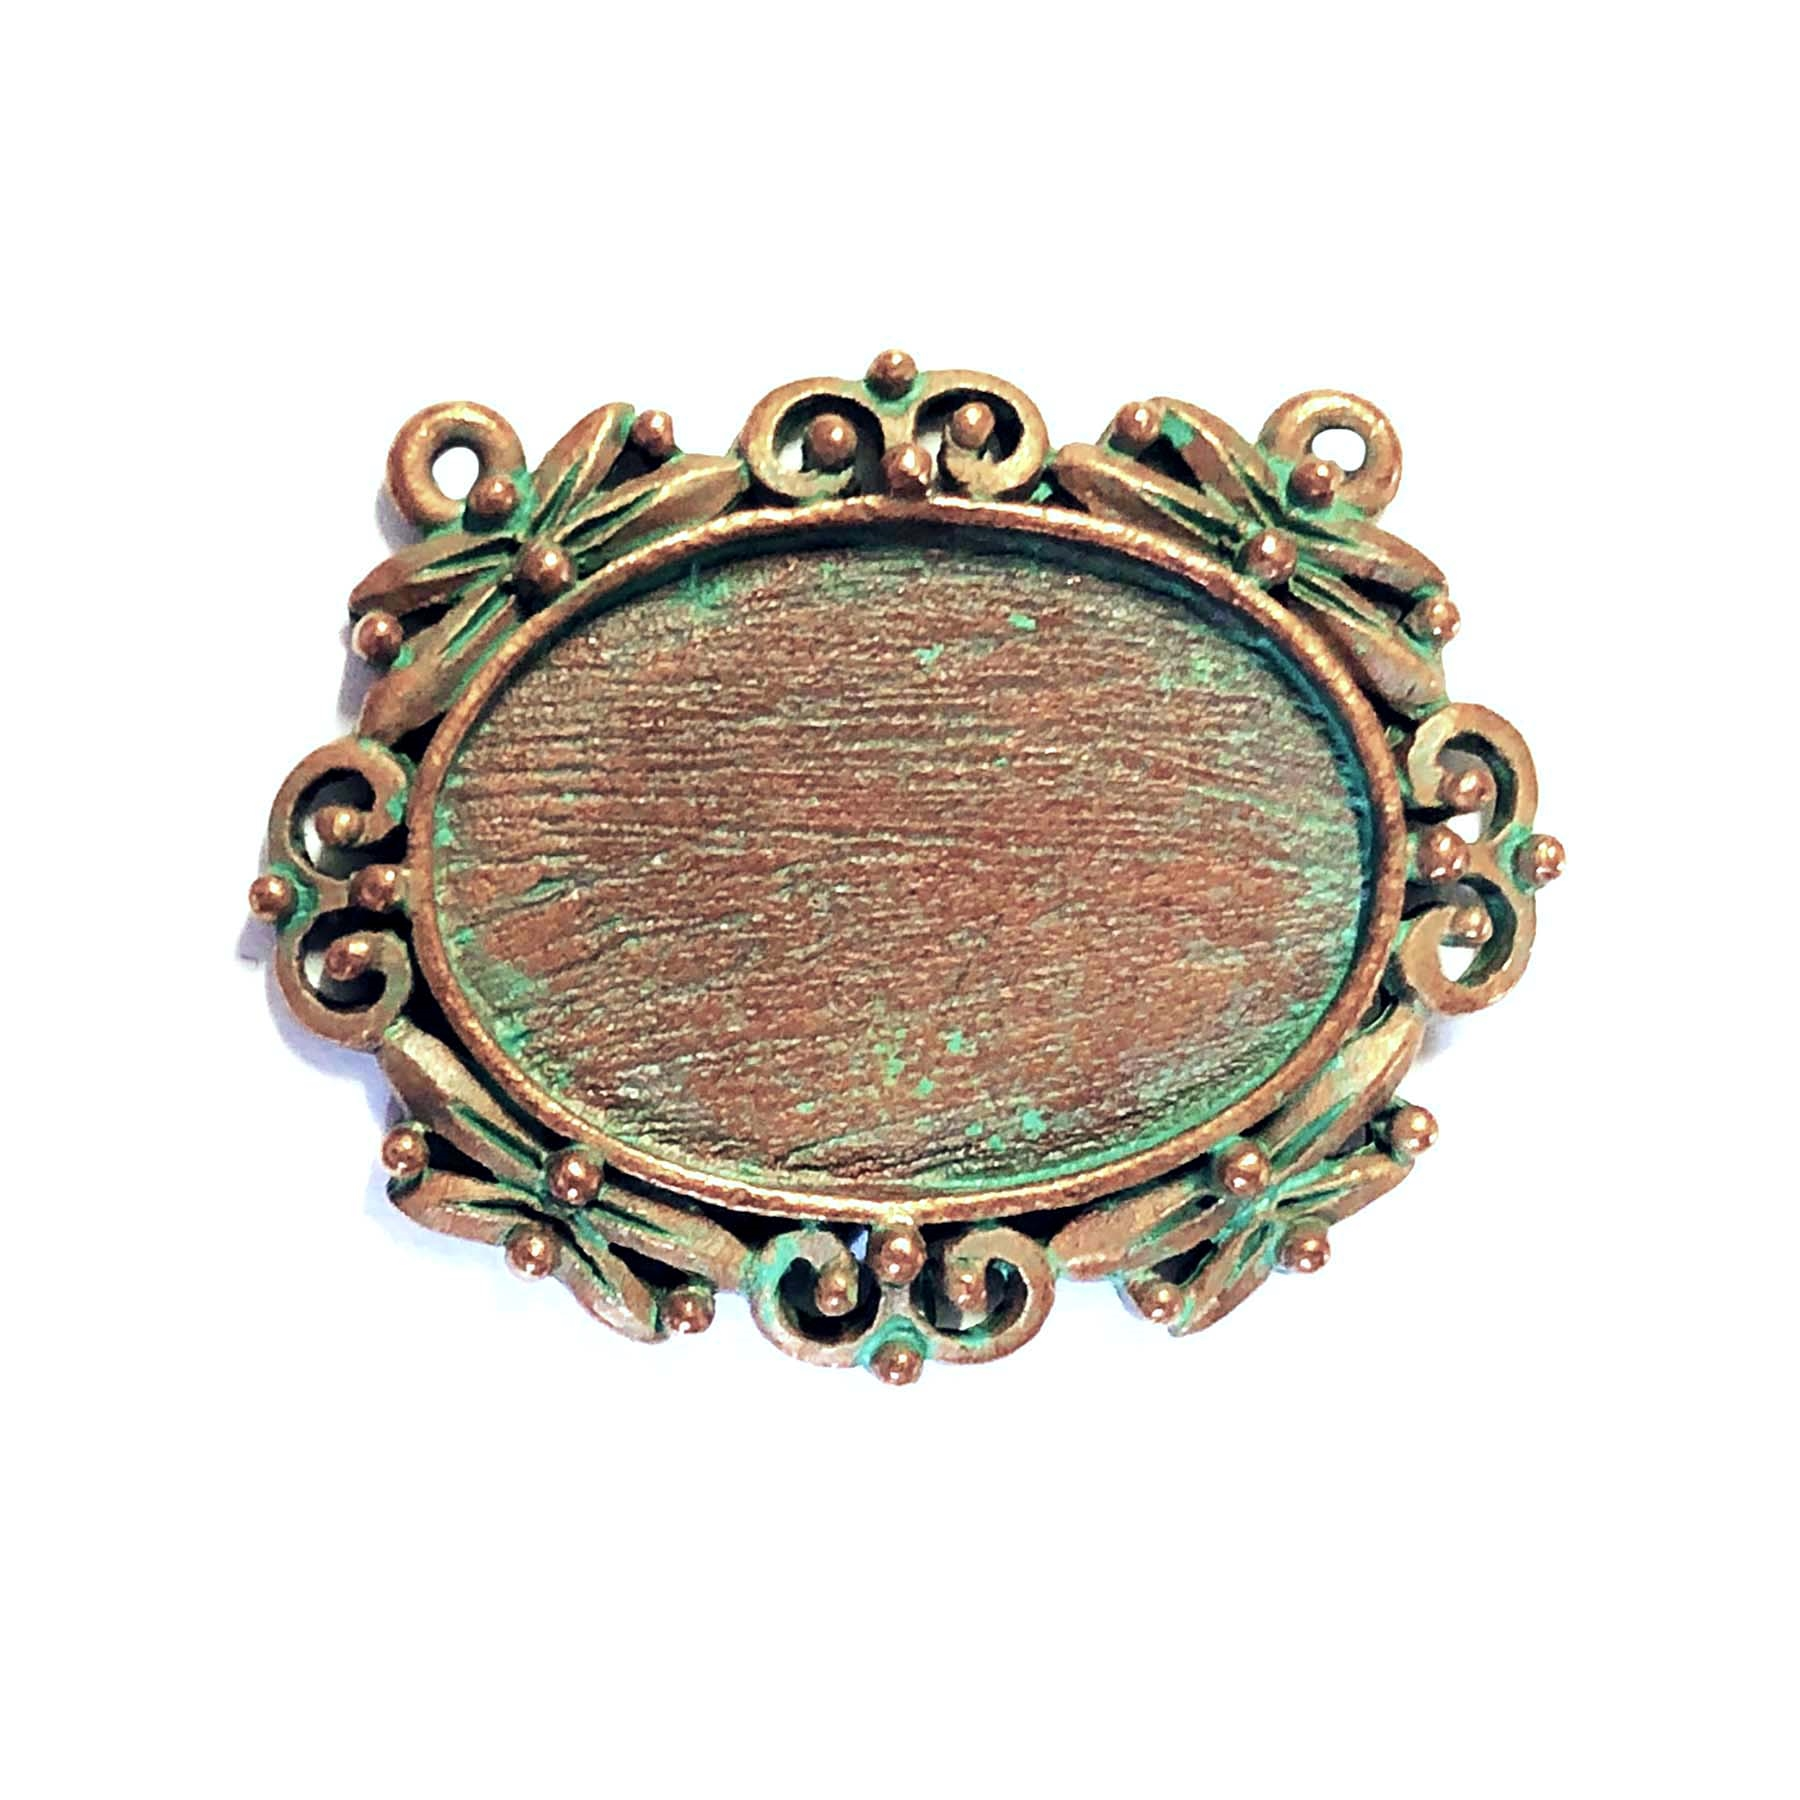 Weathered copper pewter, nickel free, double hole pendant, lead free, 0659, pewter castings, cast pewter jewelry parts, vintage, 1928 Jewelry, B'sue Boutiques, B'sue by 1928, Vintage pendants, vintage charms, vintage jewelry findings, pewter